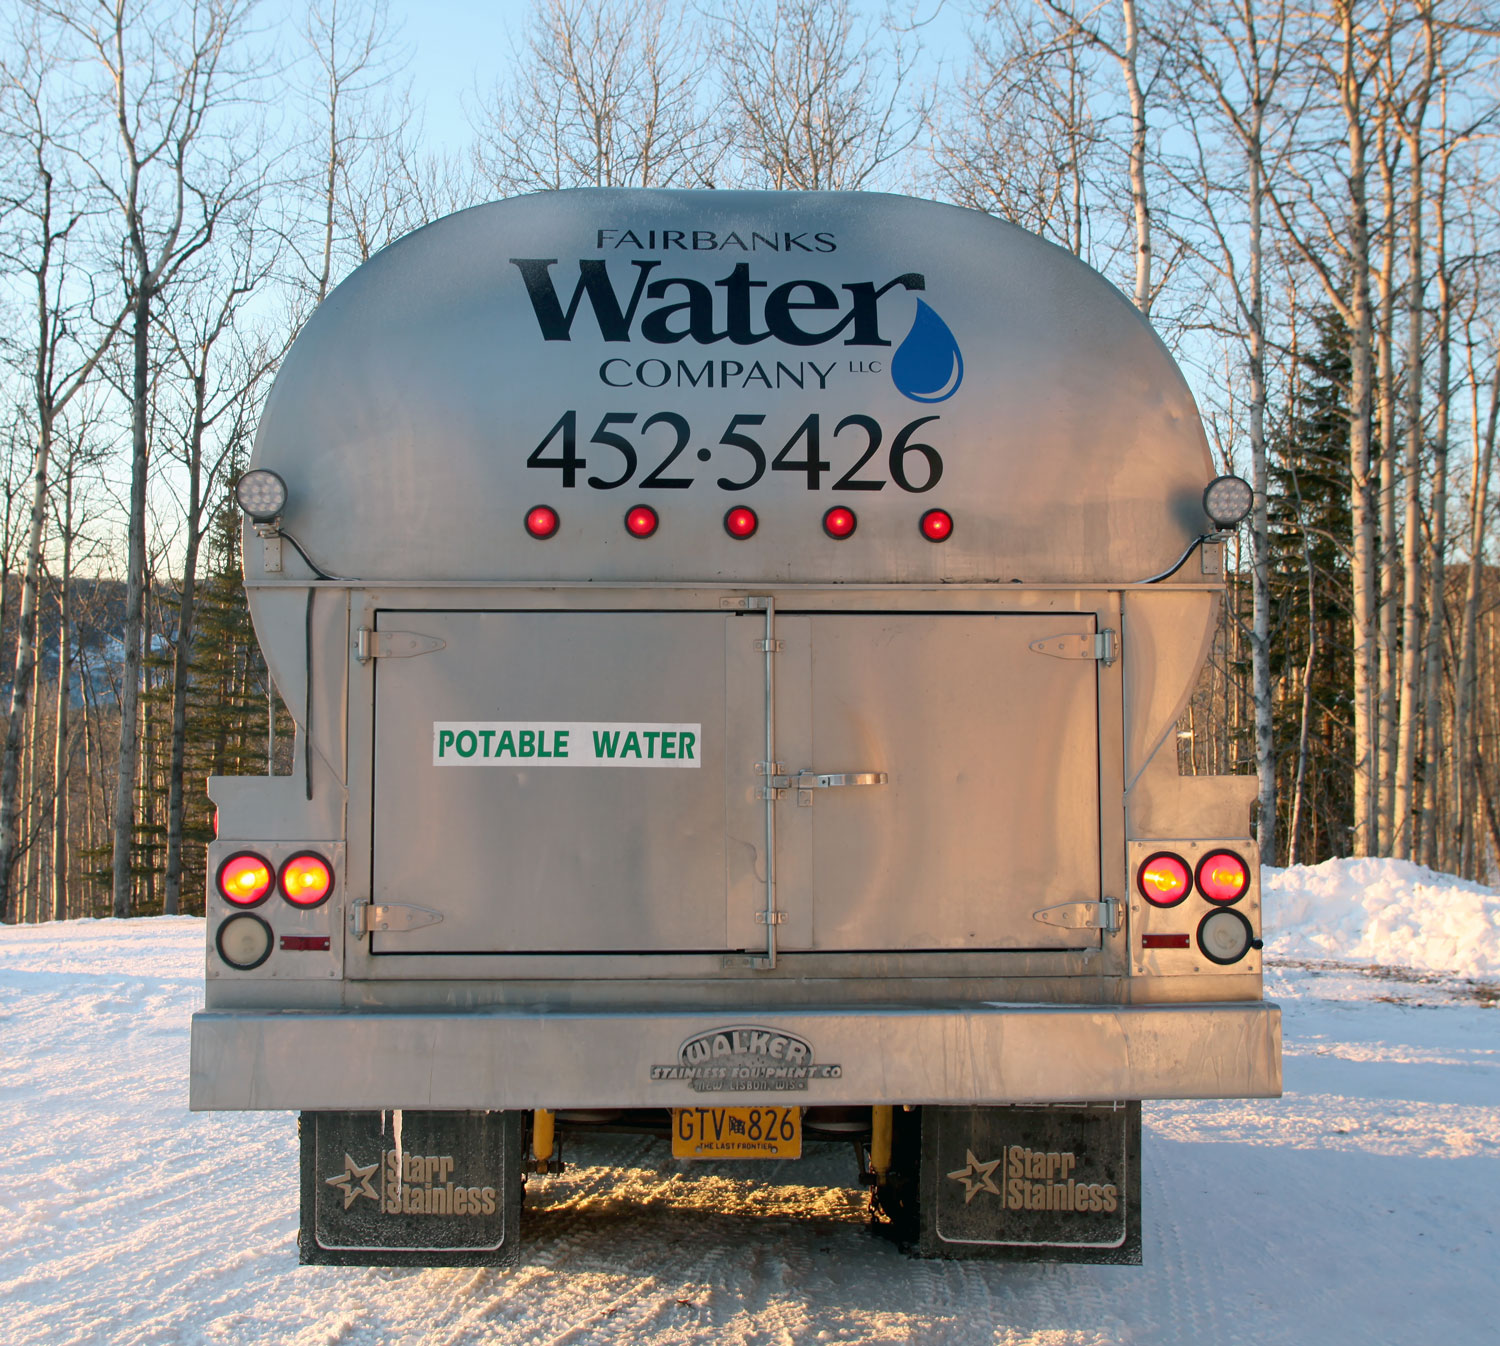 Fairbanks Water Co. delivery truck pulling away